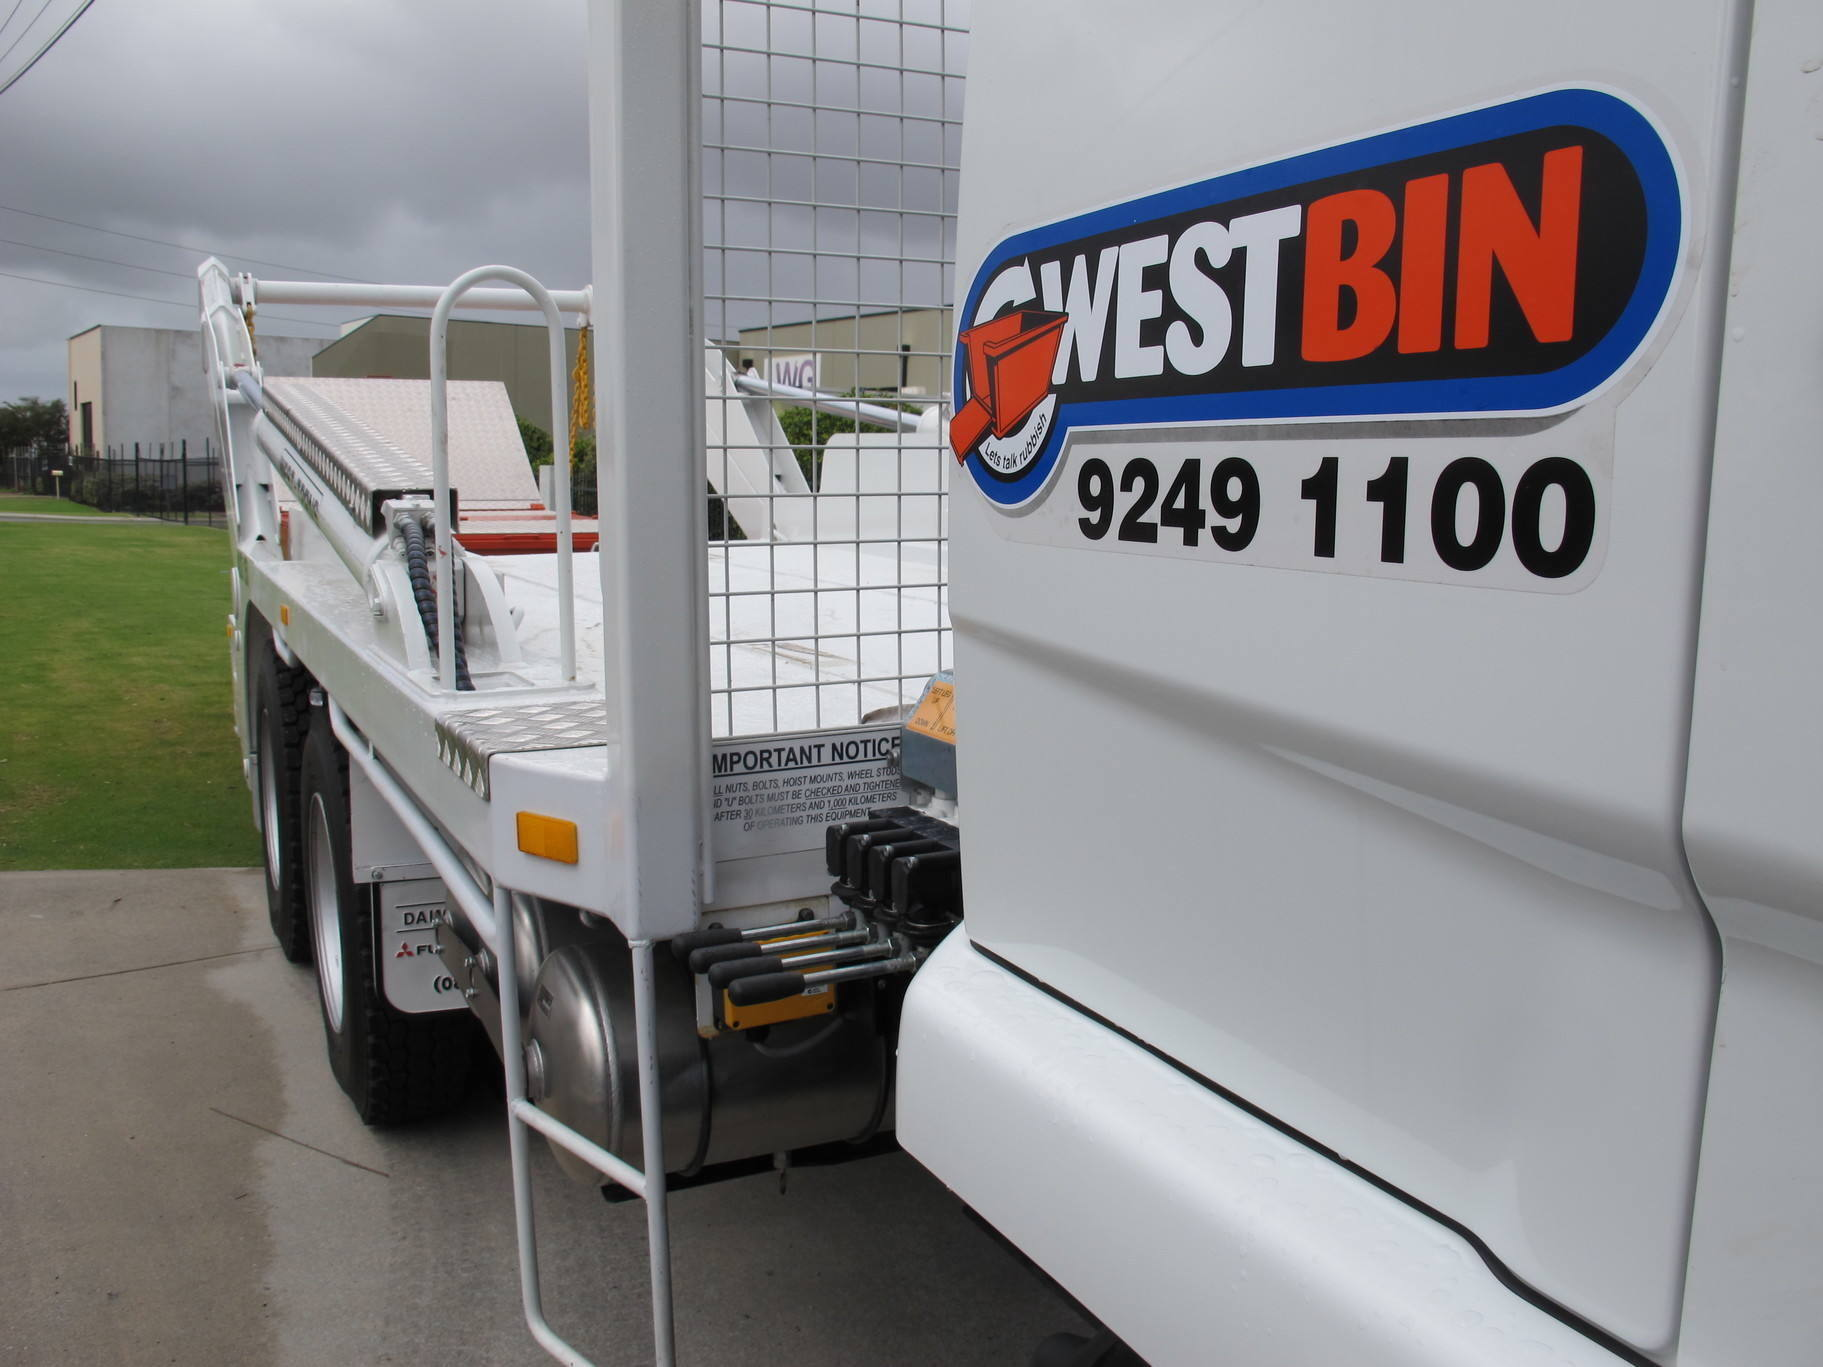 Skip Bins Perth A West Bin Rubbish Removal And Skip Bins Perth